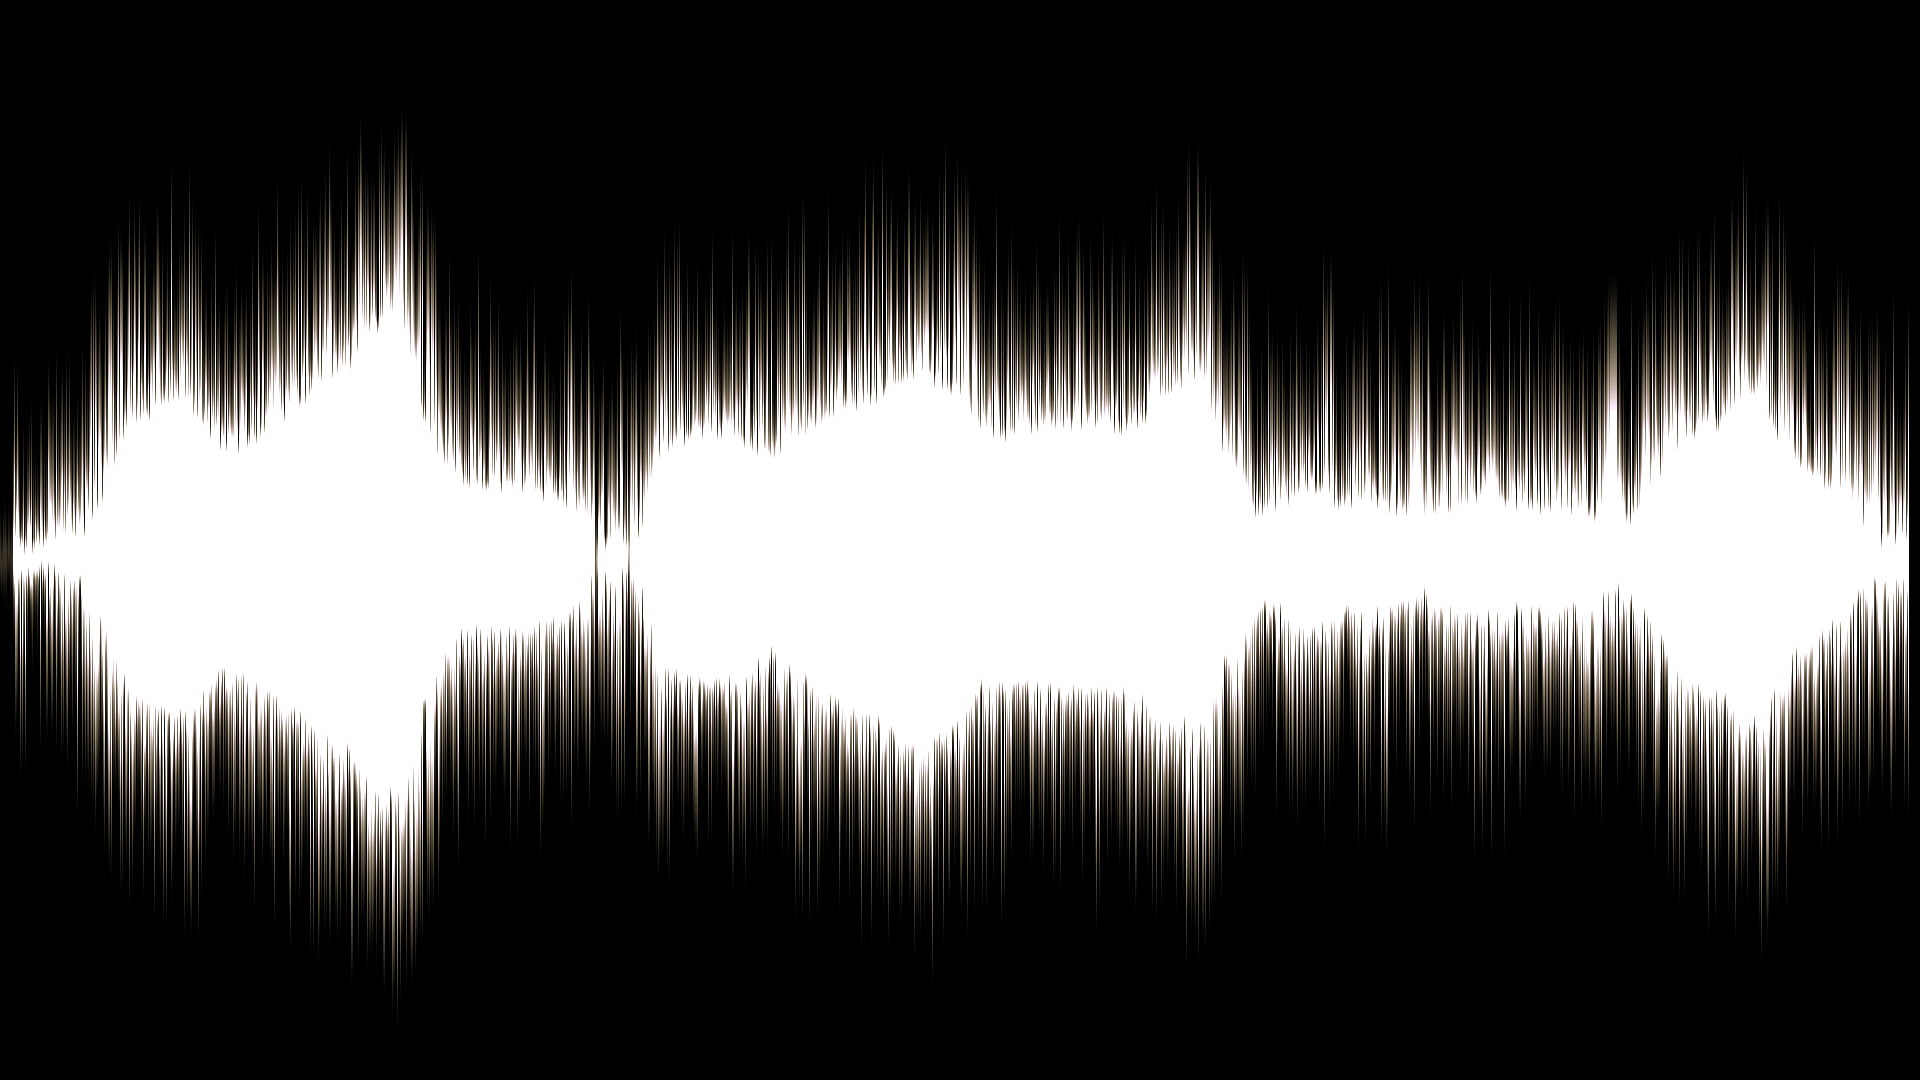 HD Sound Wave Backgrounds 1920x1080